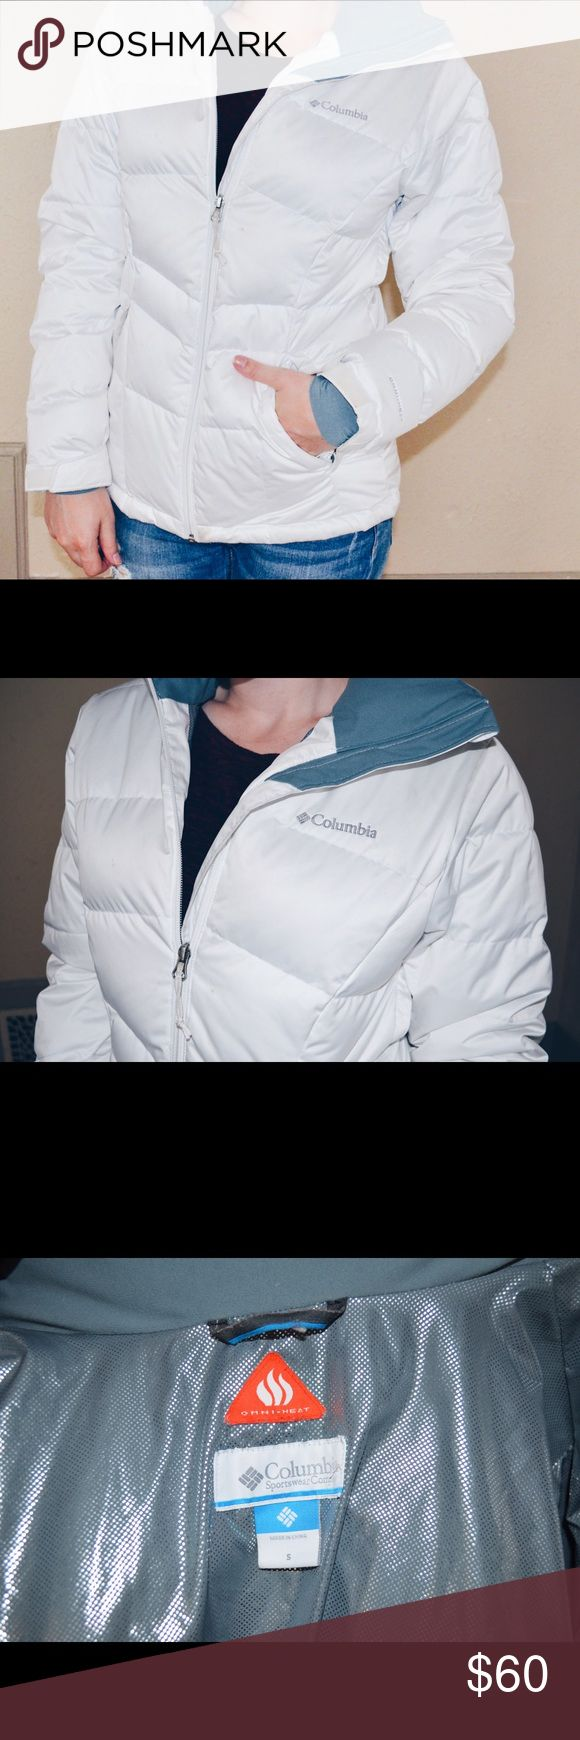 White Columbia Omni Heat Jacket Small This white jacket will keep you warm in the coldest of places. The reflective lining traps body heat to keep you toasty Columbia Jackets & Coats Puffers